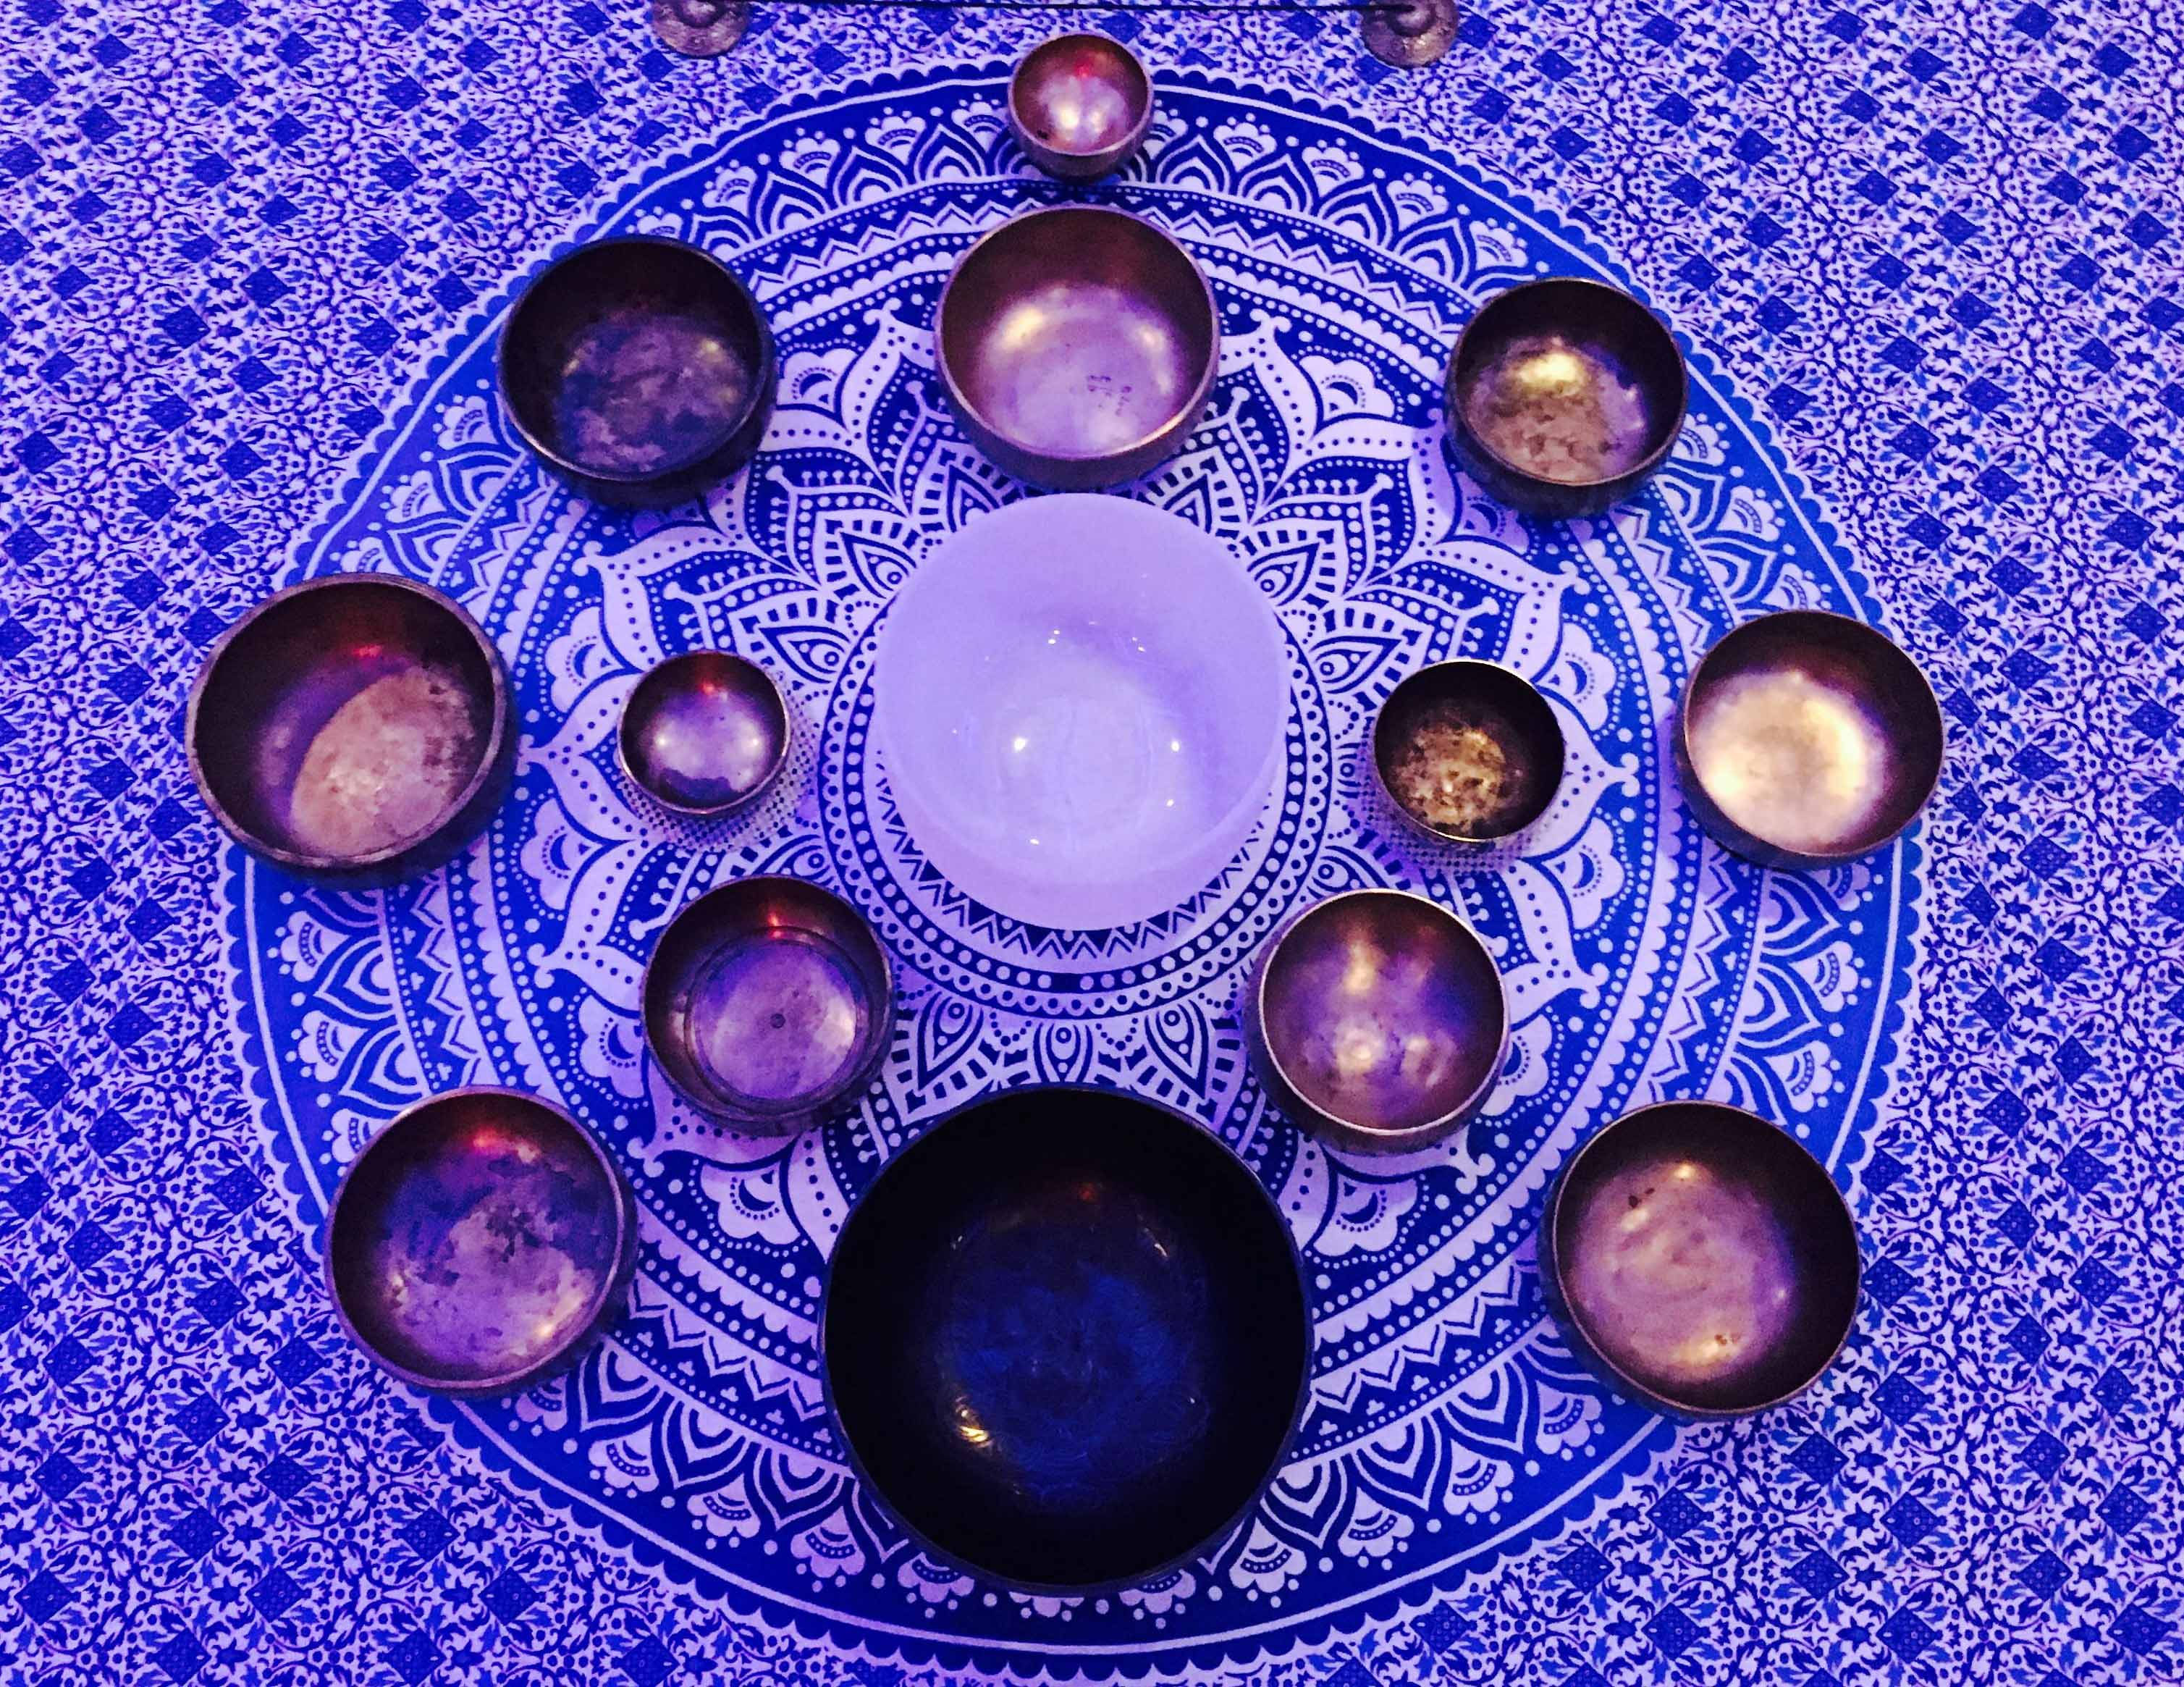 Tibetan Singing Bowls on purple cloth